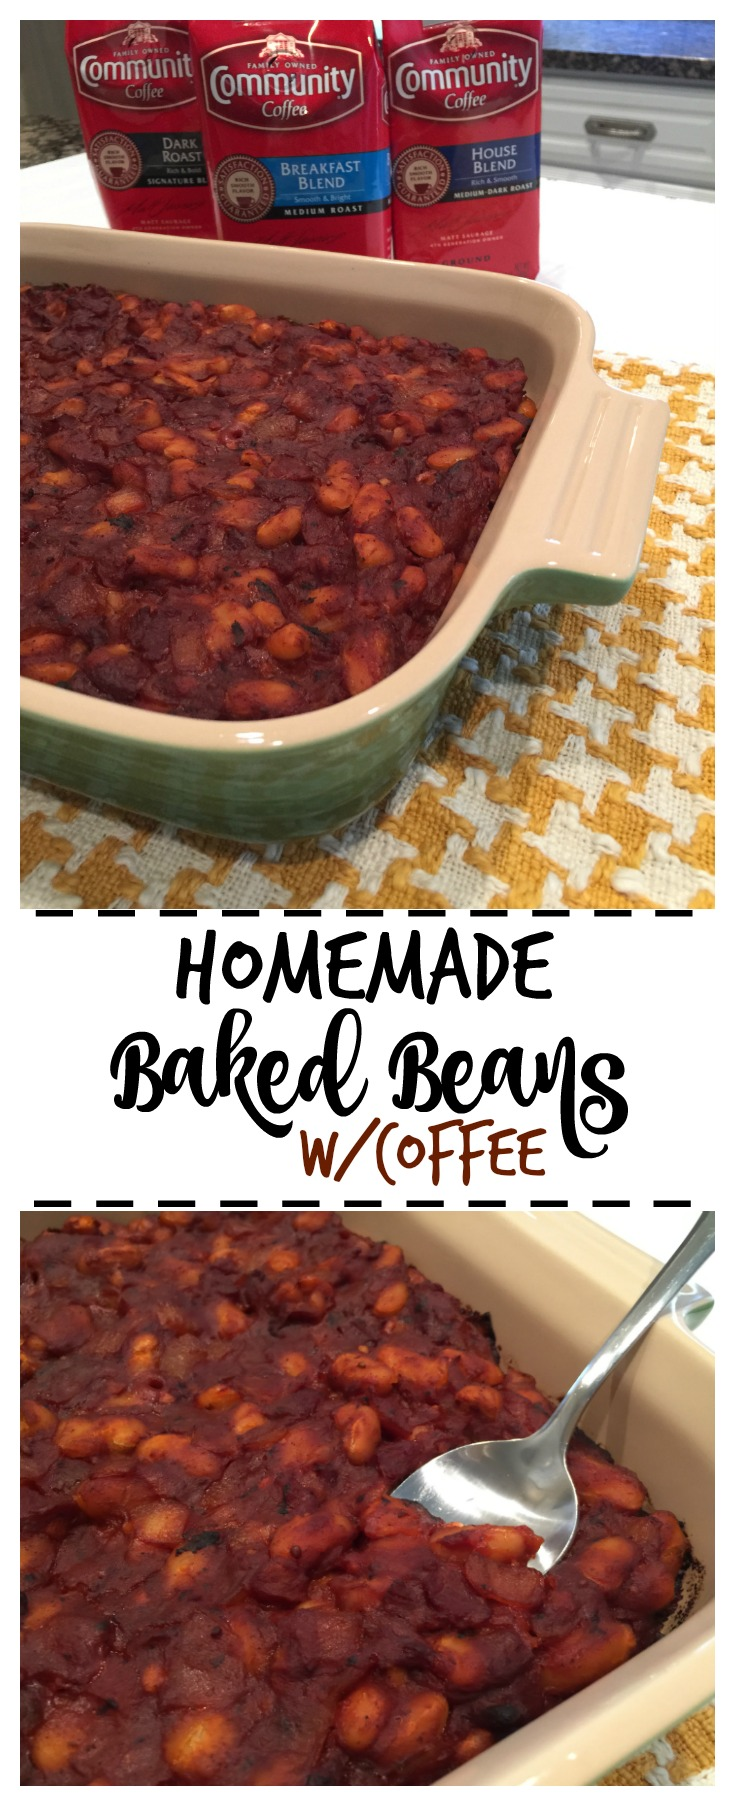 Homemade Baked Beans with Coffee